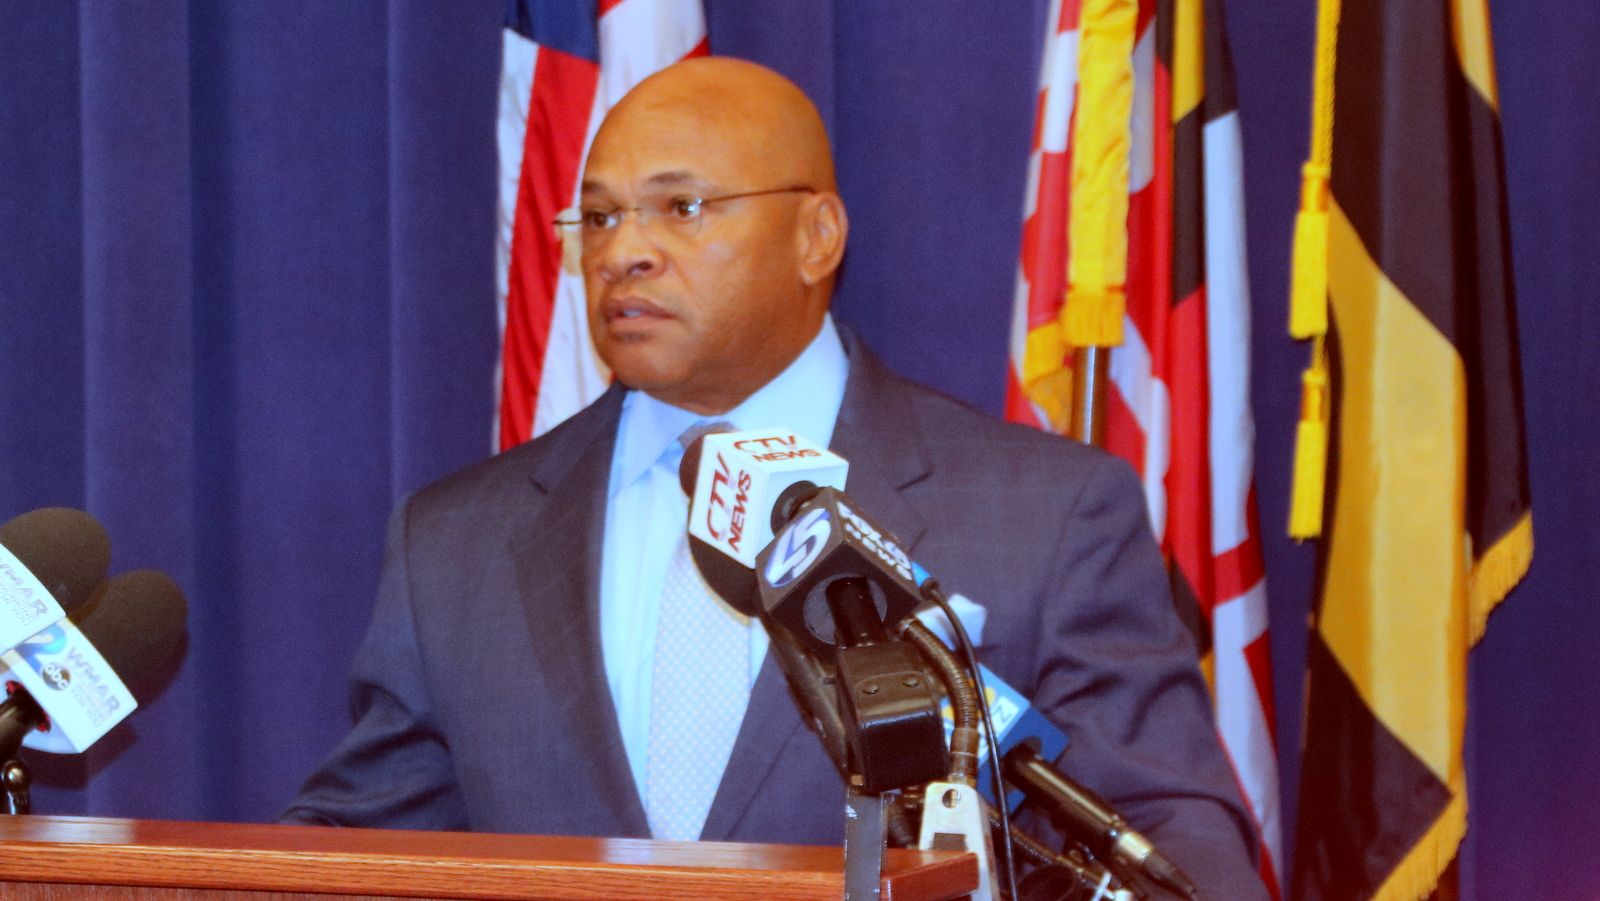 Interim Commissioner Gary Tuggle at a news conference following an officer's beating of a resident Saturday, caught on video that went viral. (Fern Shen)